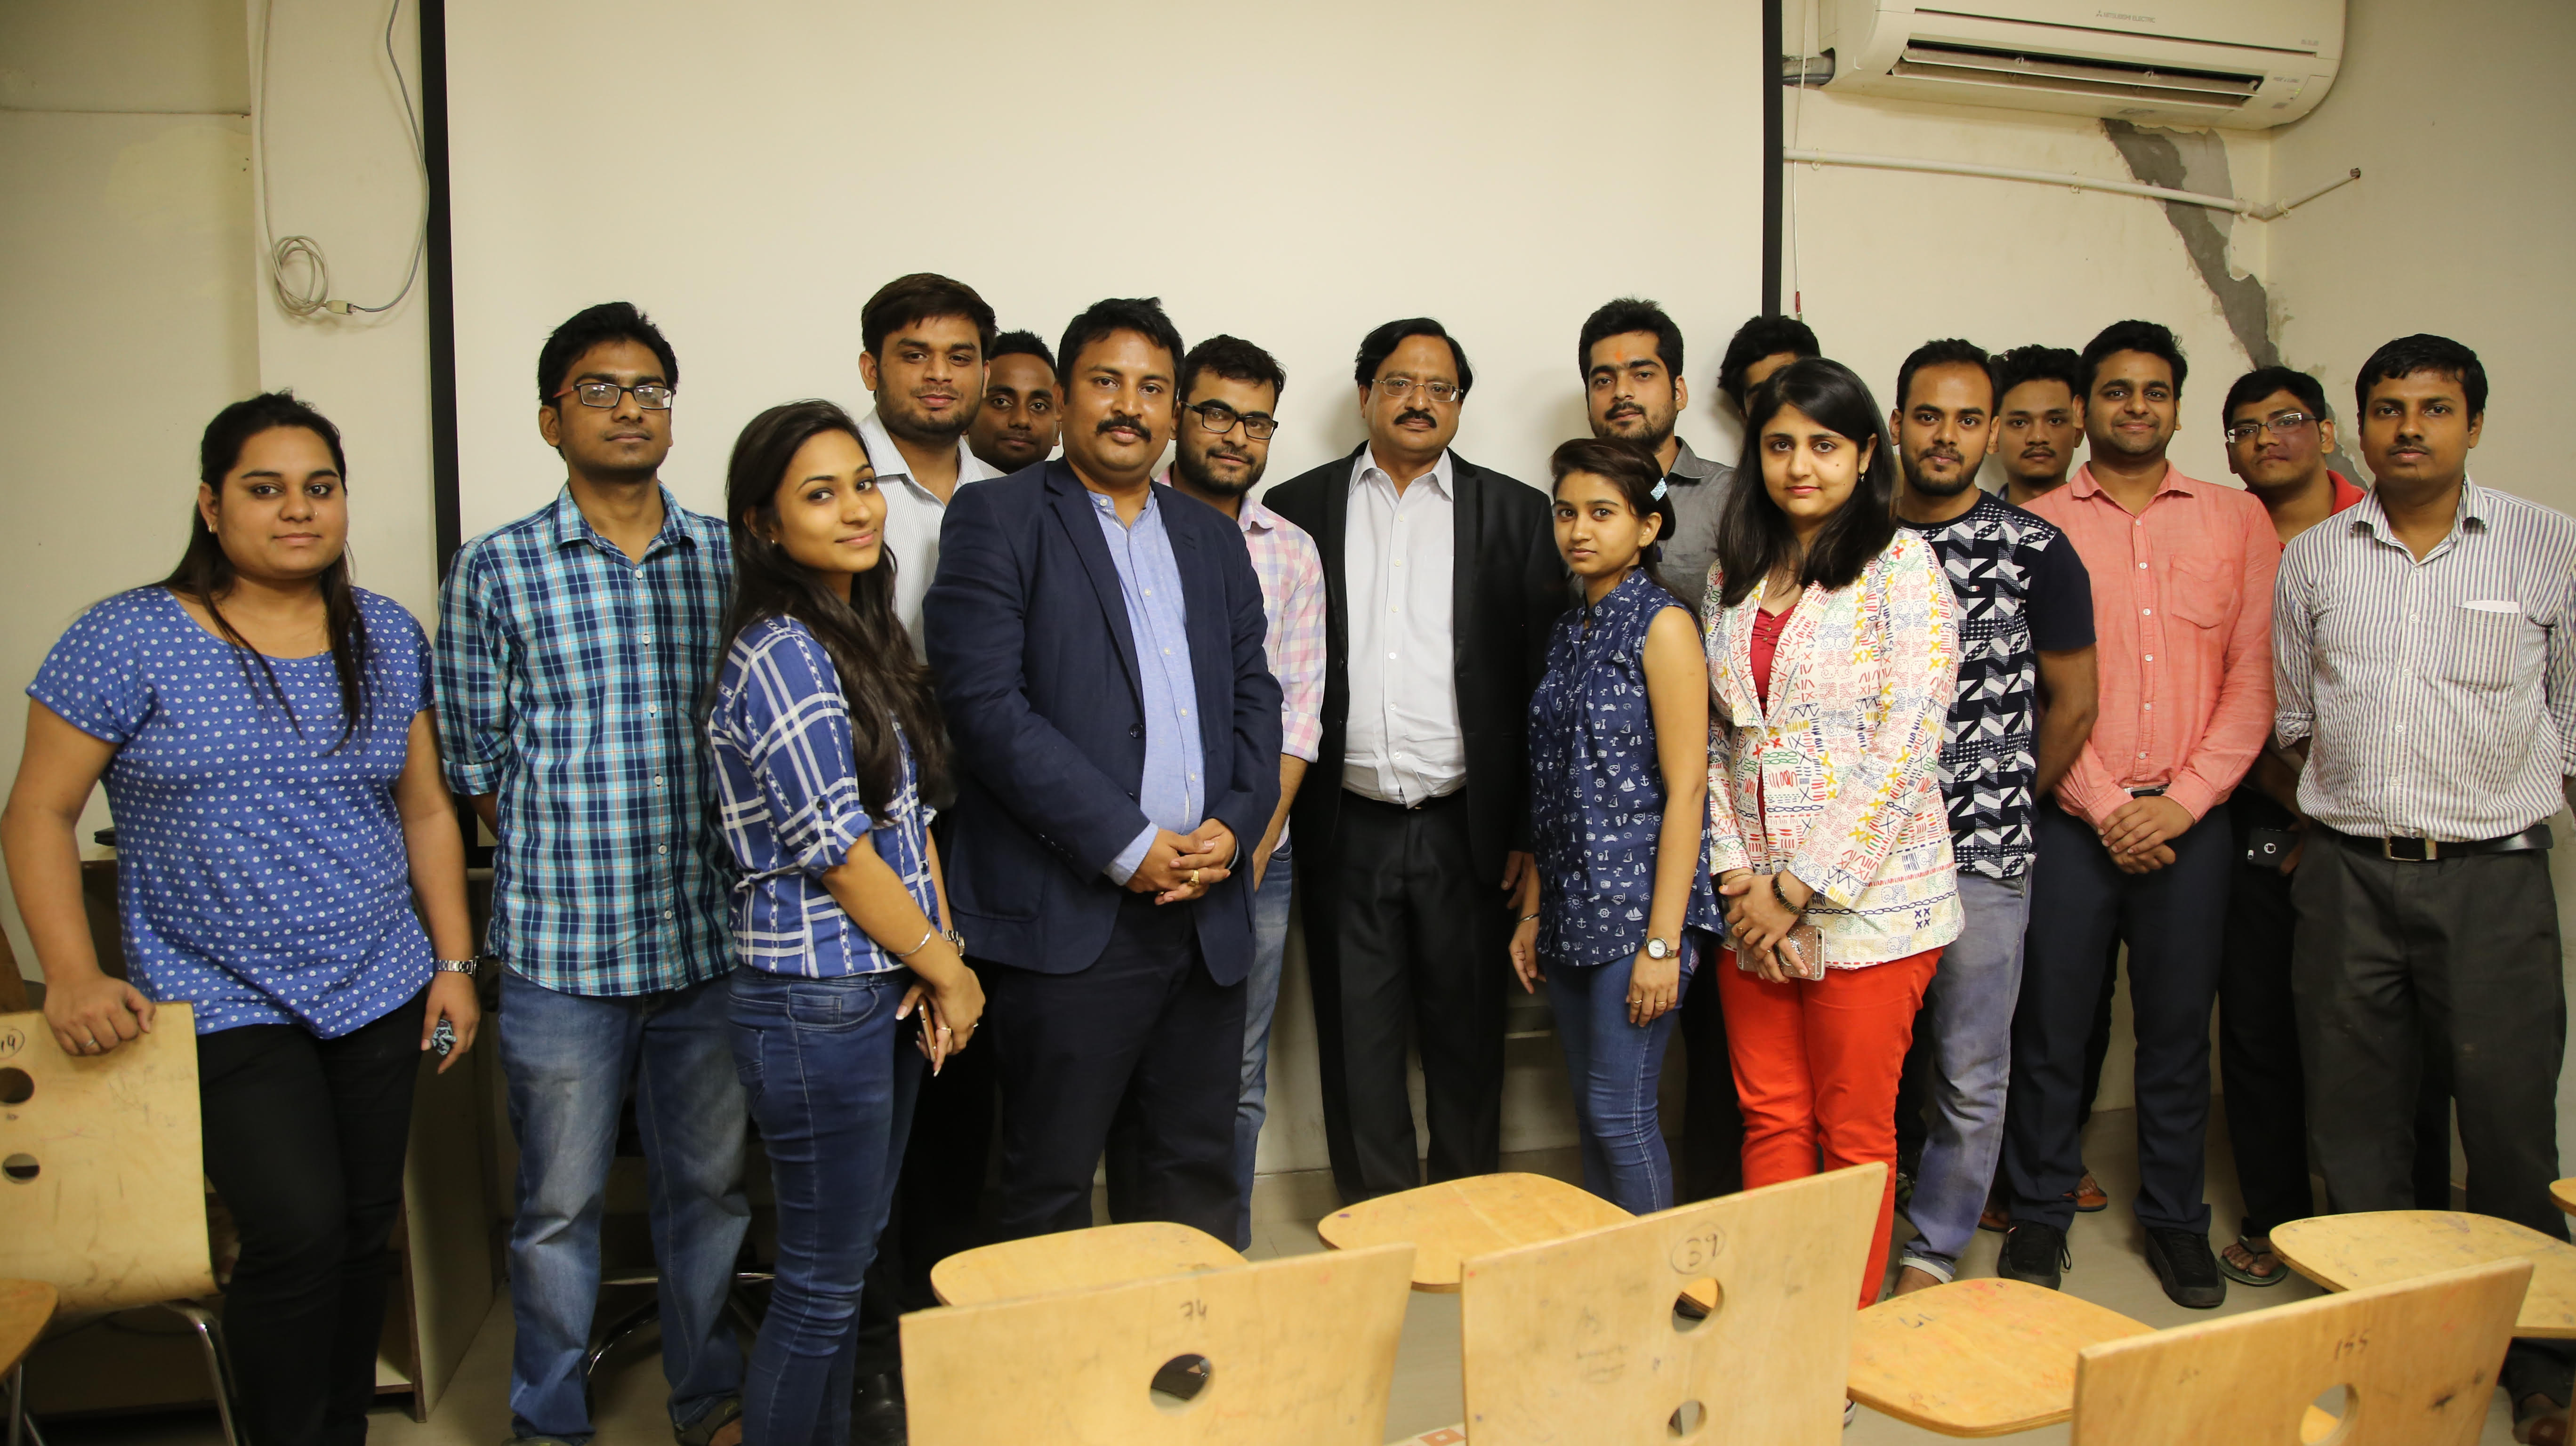 Vg sir with BACA Students